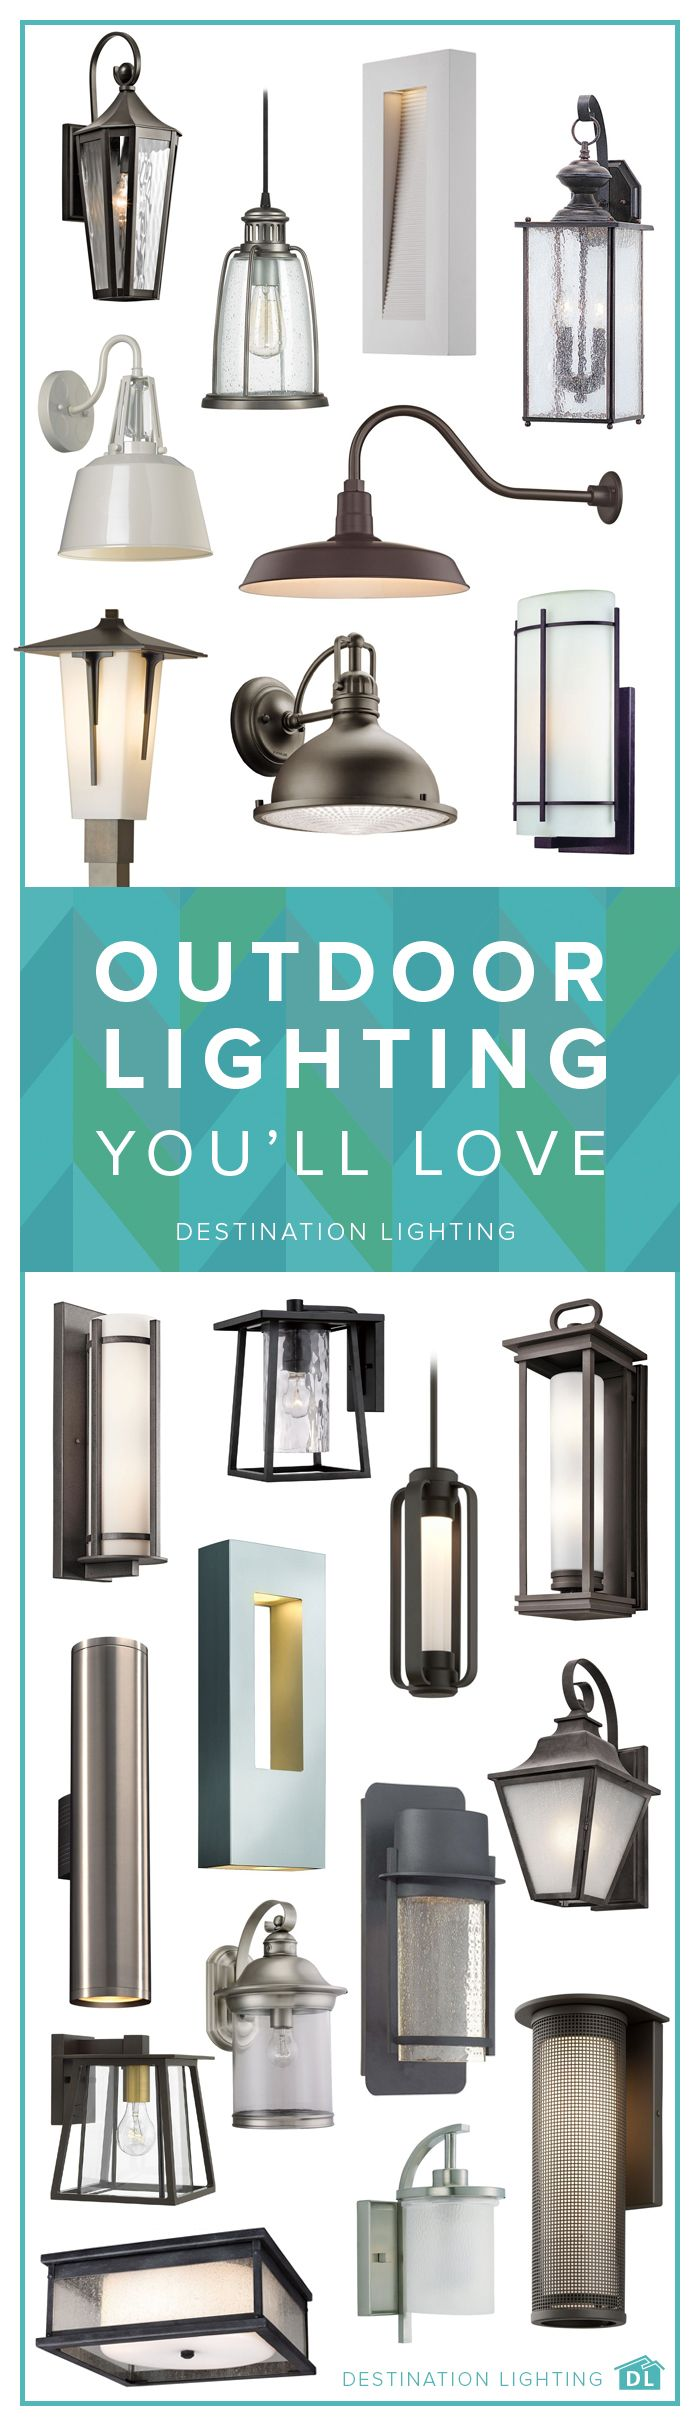 Take your curb appeal to the next level with some beautiful new take your curb appeal to the next level with some beautiful new outdoor lighting from aloadofball Images